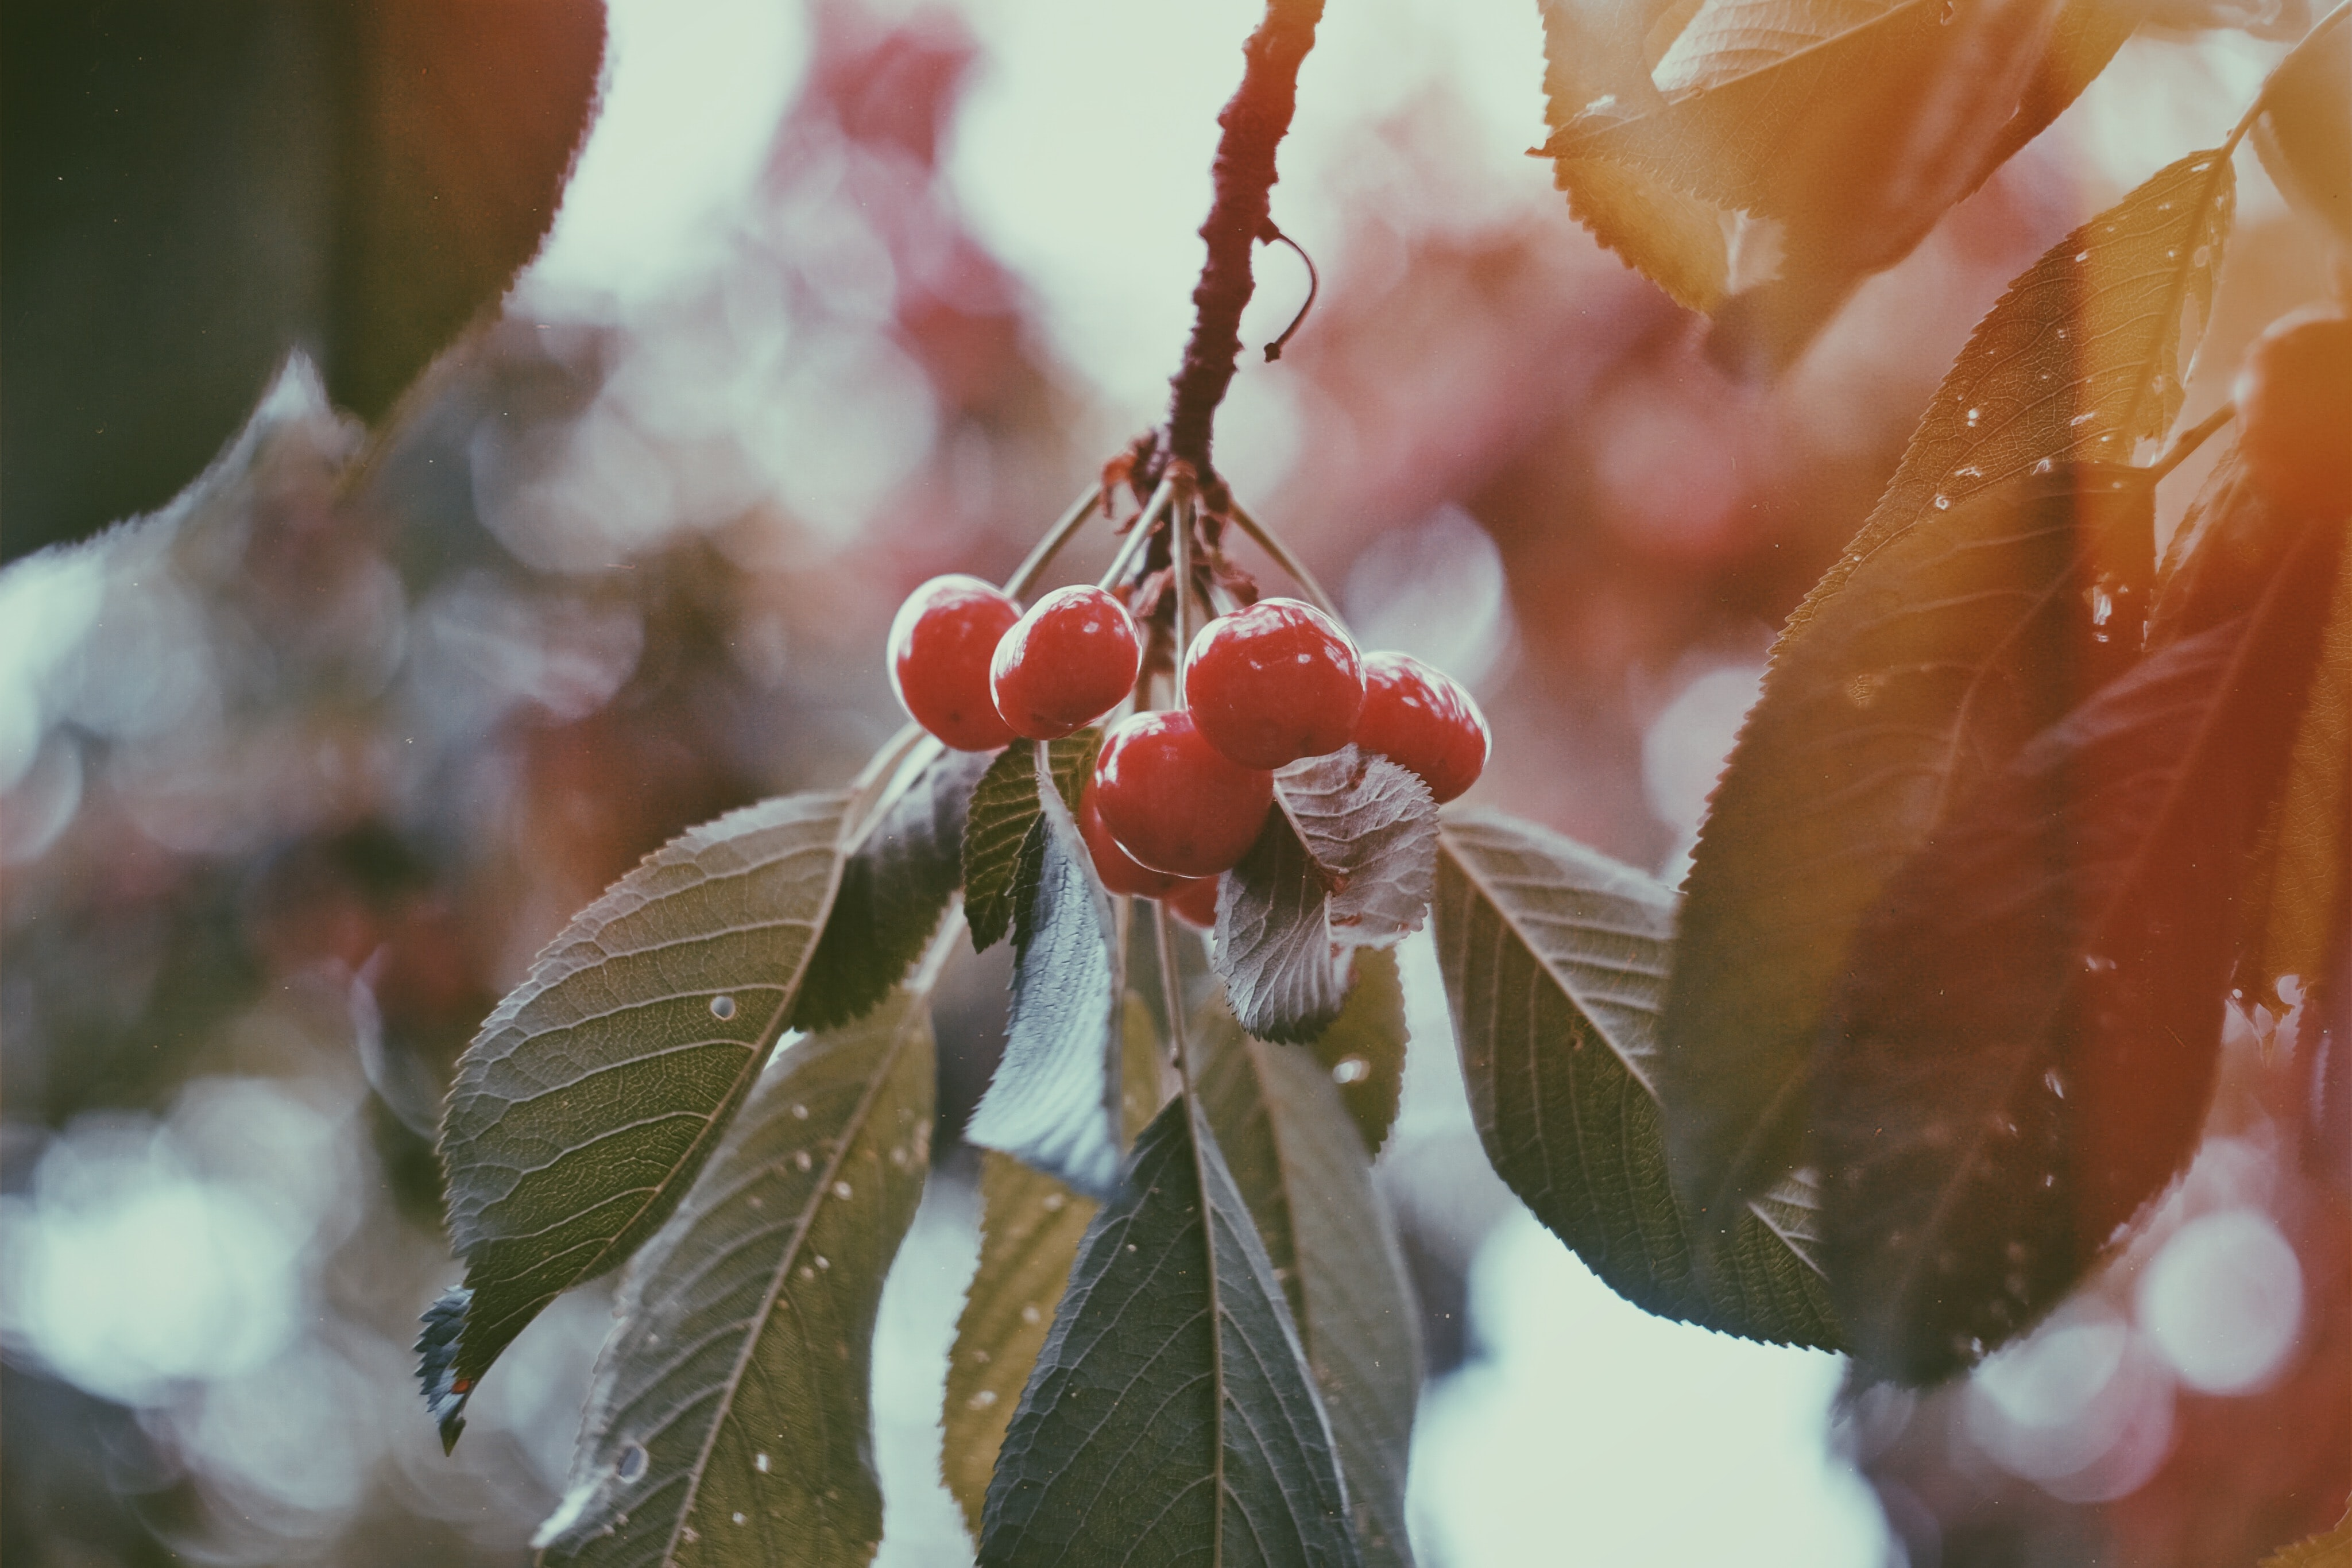 Wild red berries on a leafy branch in the winter